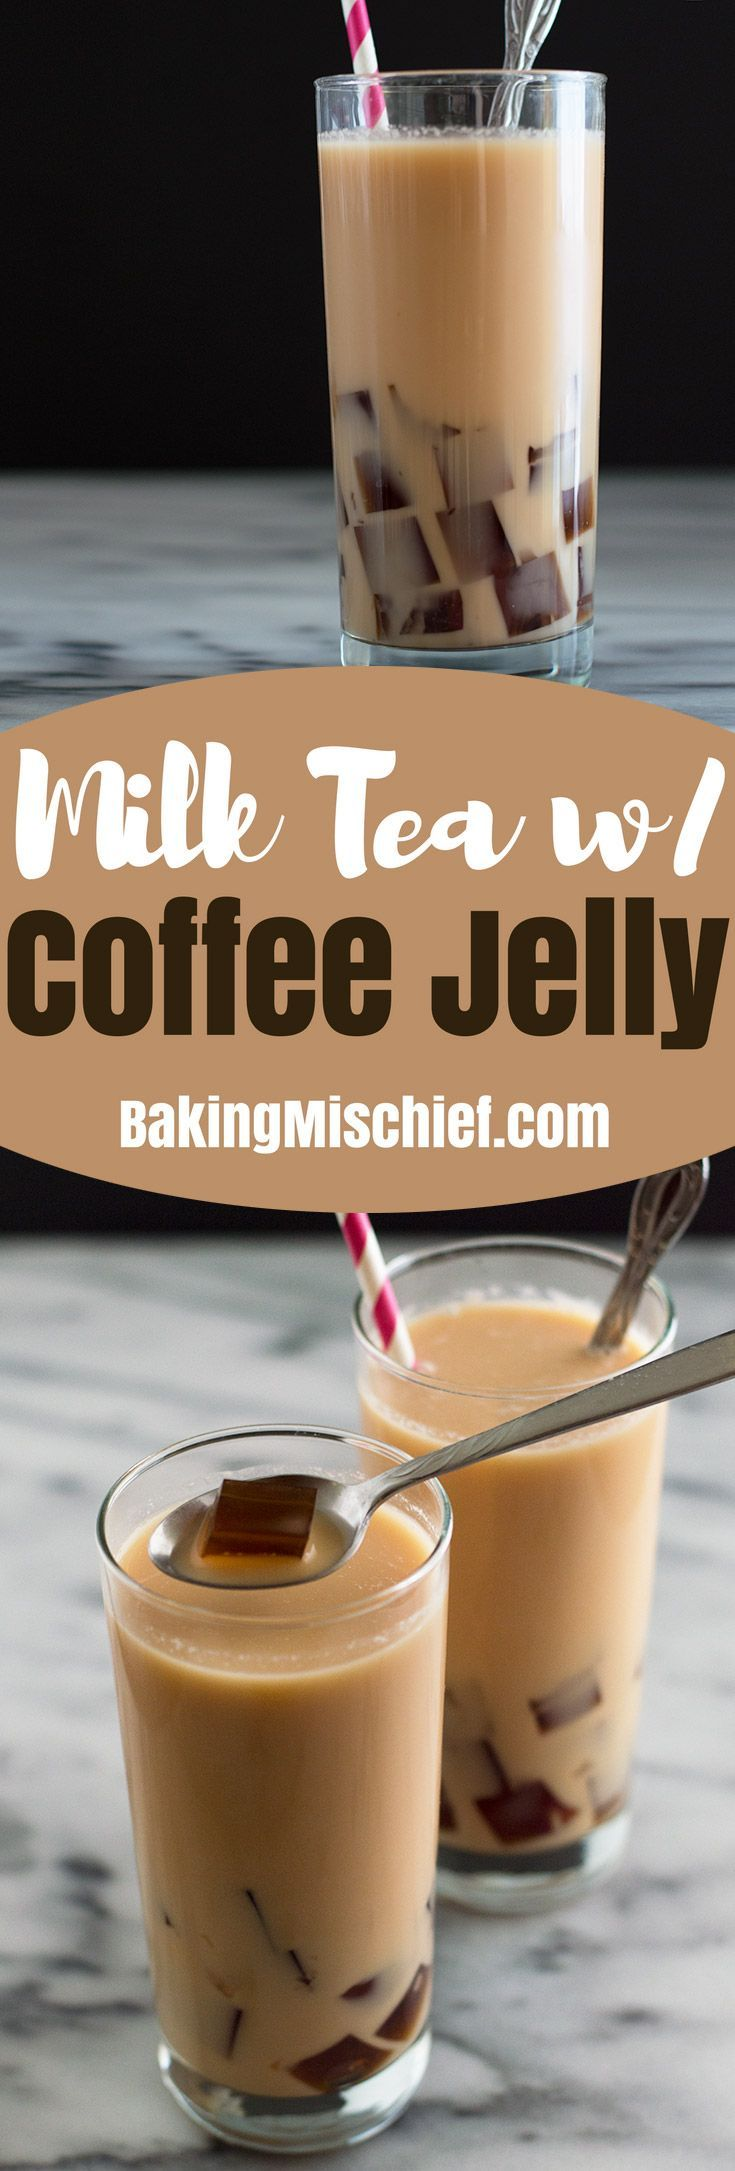 Best 10+ Coffee milk ideas on Pinterest | Coffee drinks, Coffee ...